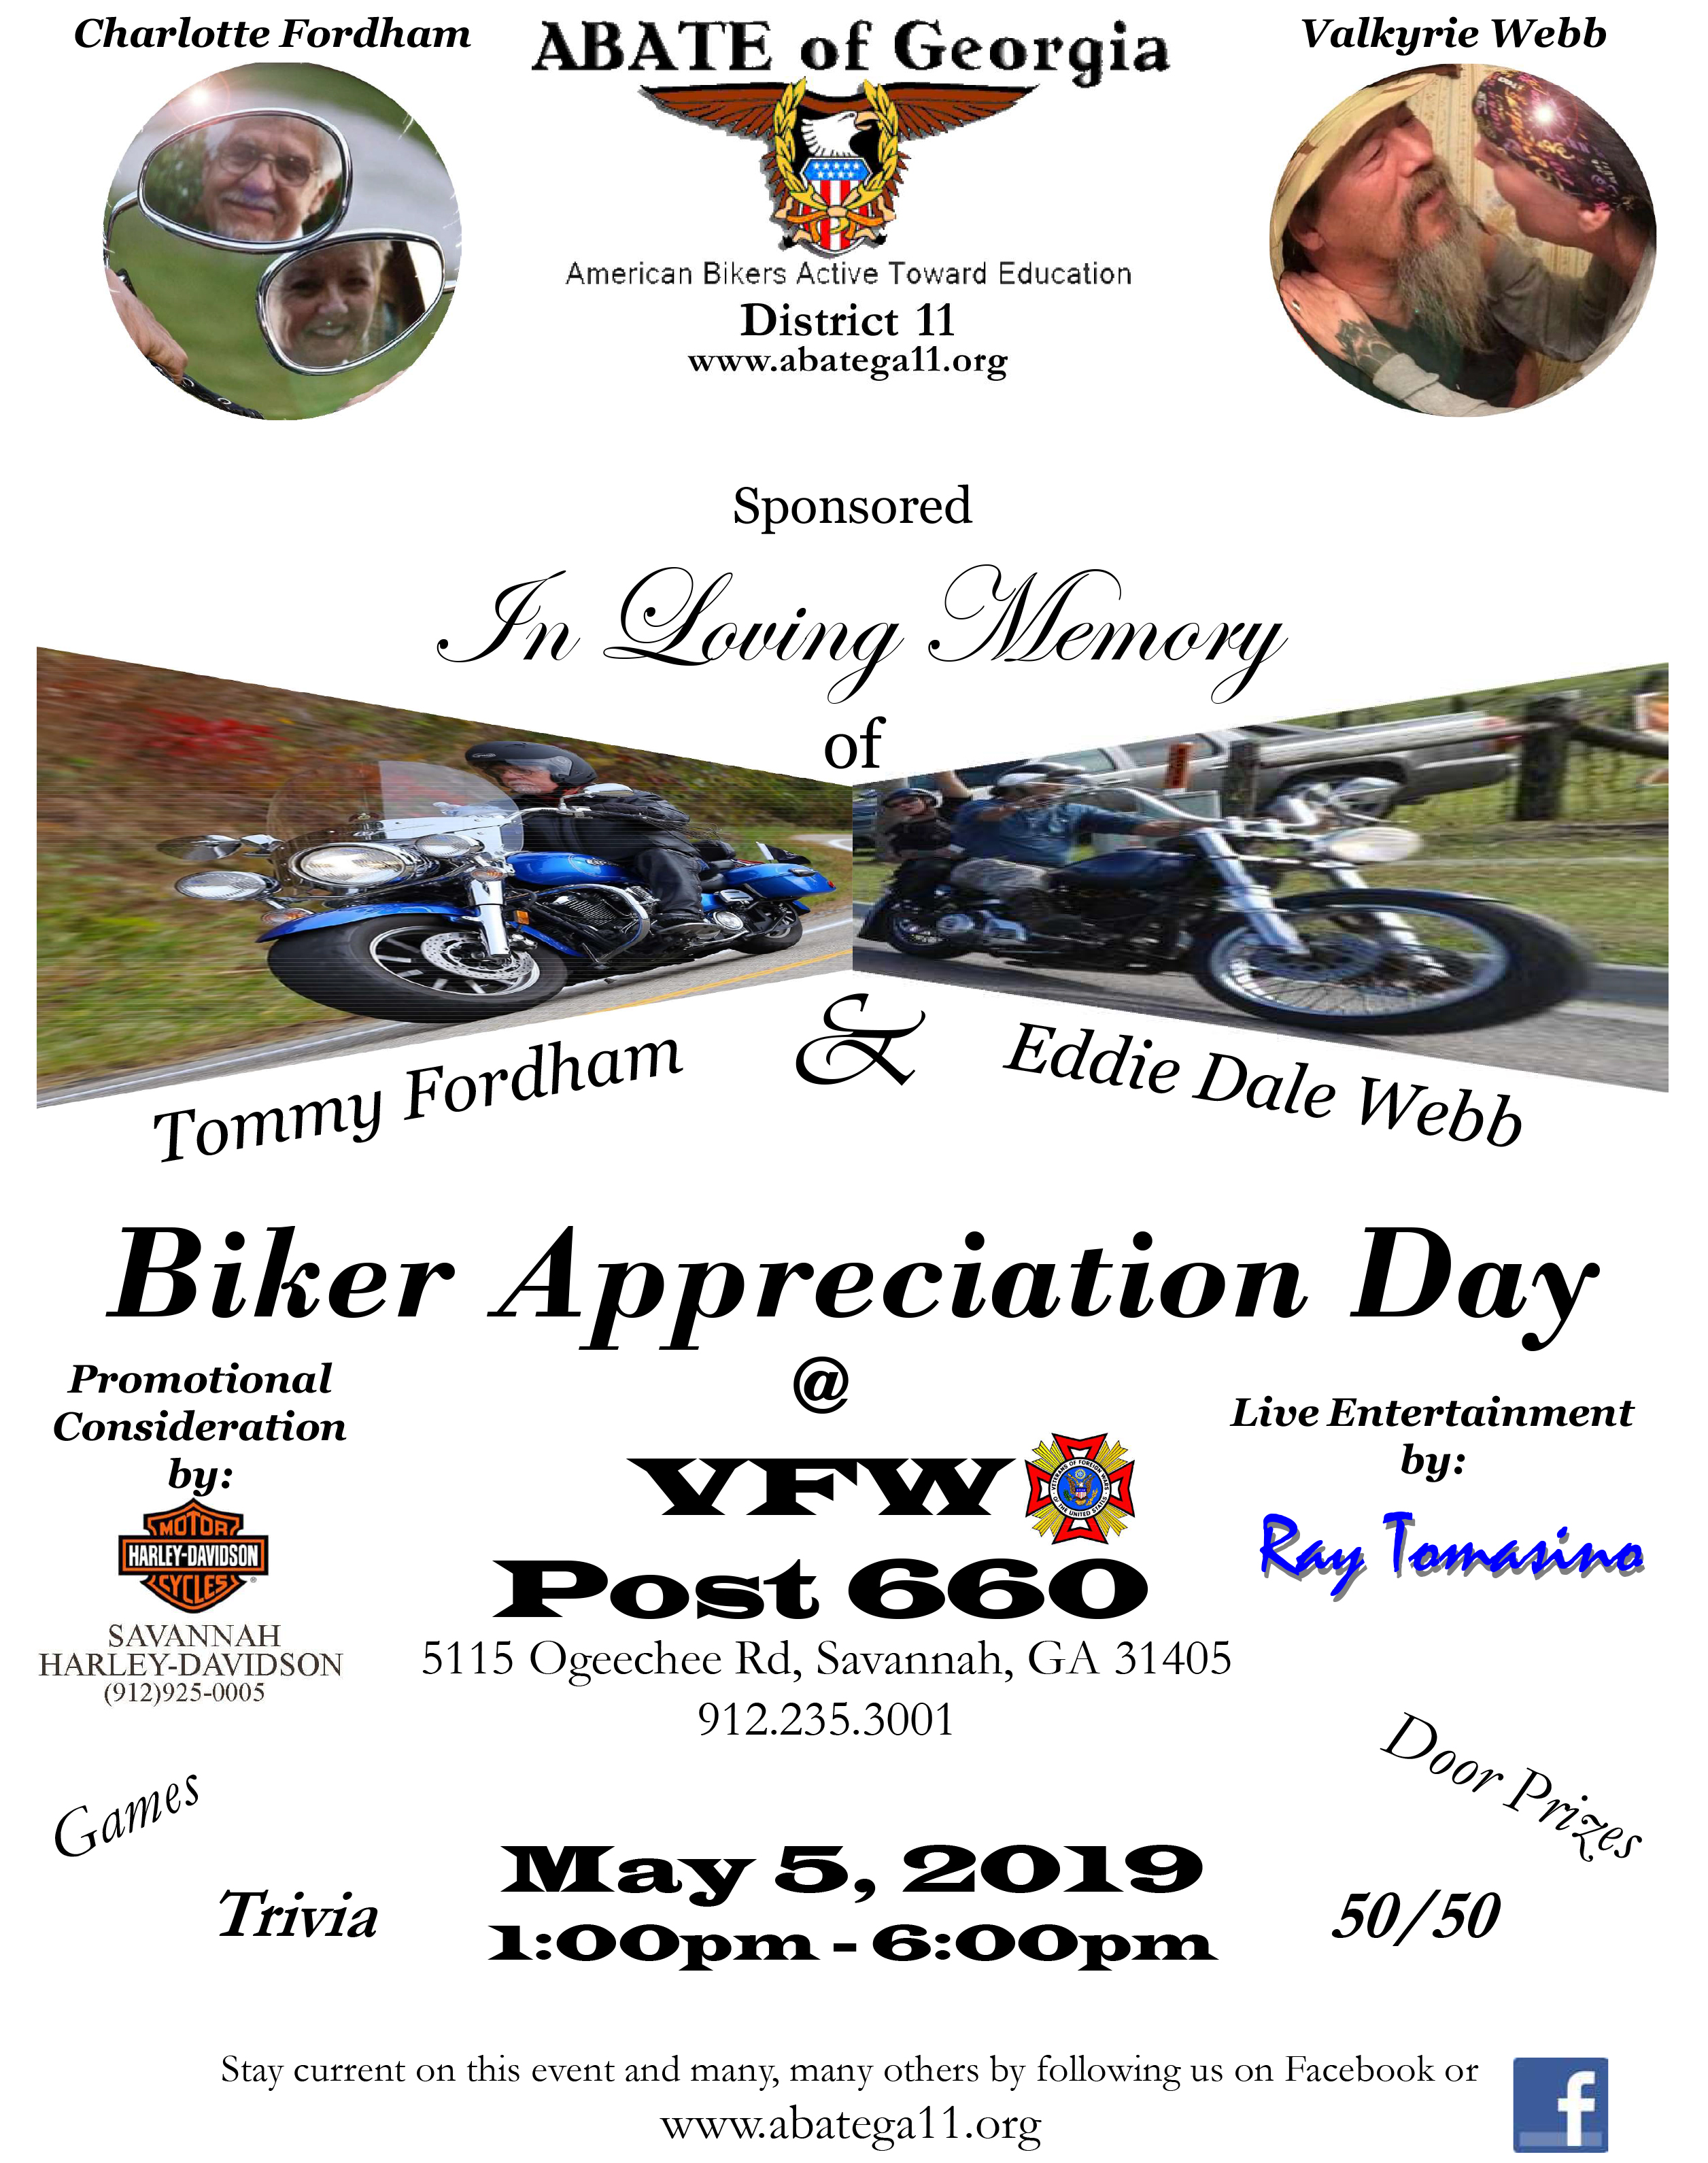 ABATE of Georgia, District 11 - Biker Appreciation Day @ VFW Post 660 | Savannah | Georgia | United States